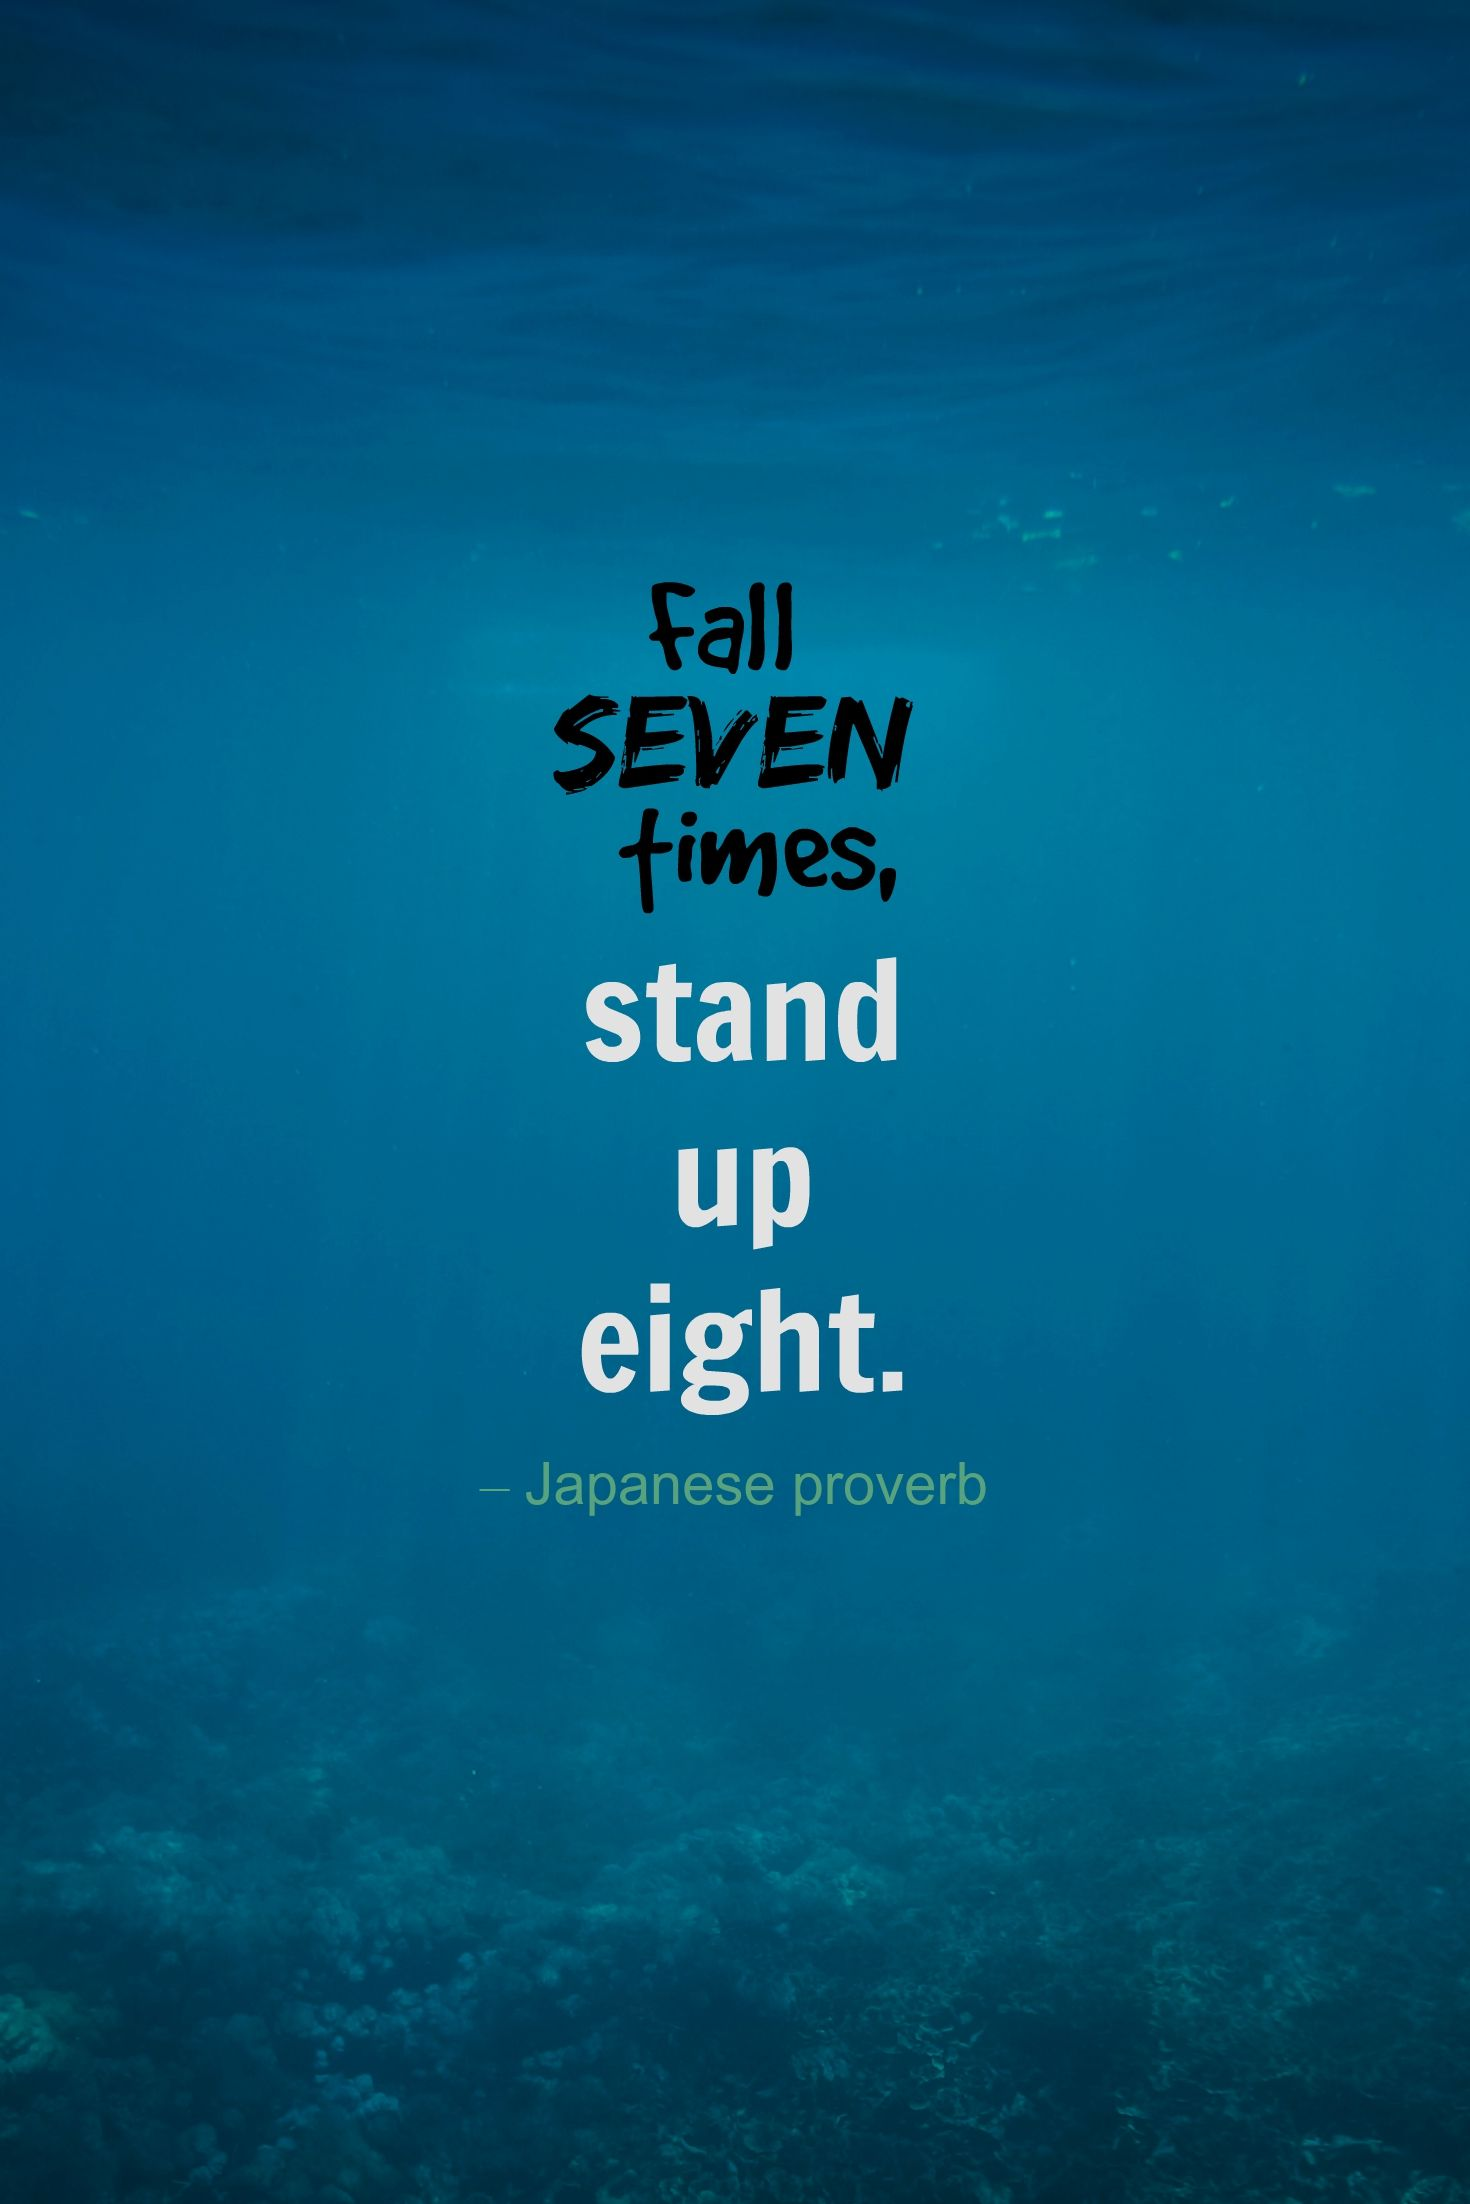 Fall Seven Times Stand Up Eight Japanese Proverb Life Quotes Famous Quotes About Life Entrepreneur Quotes